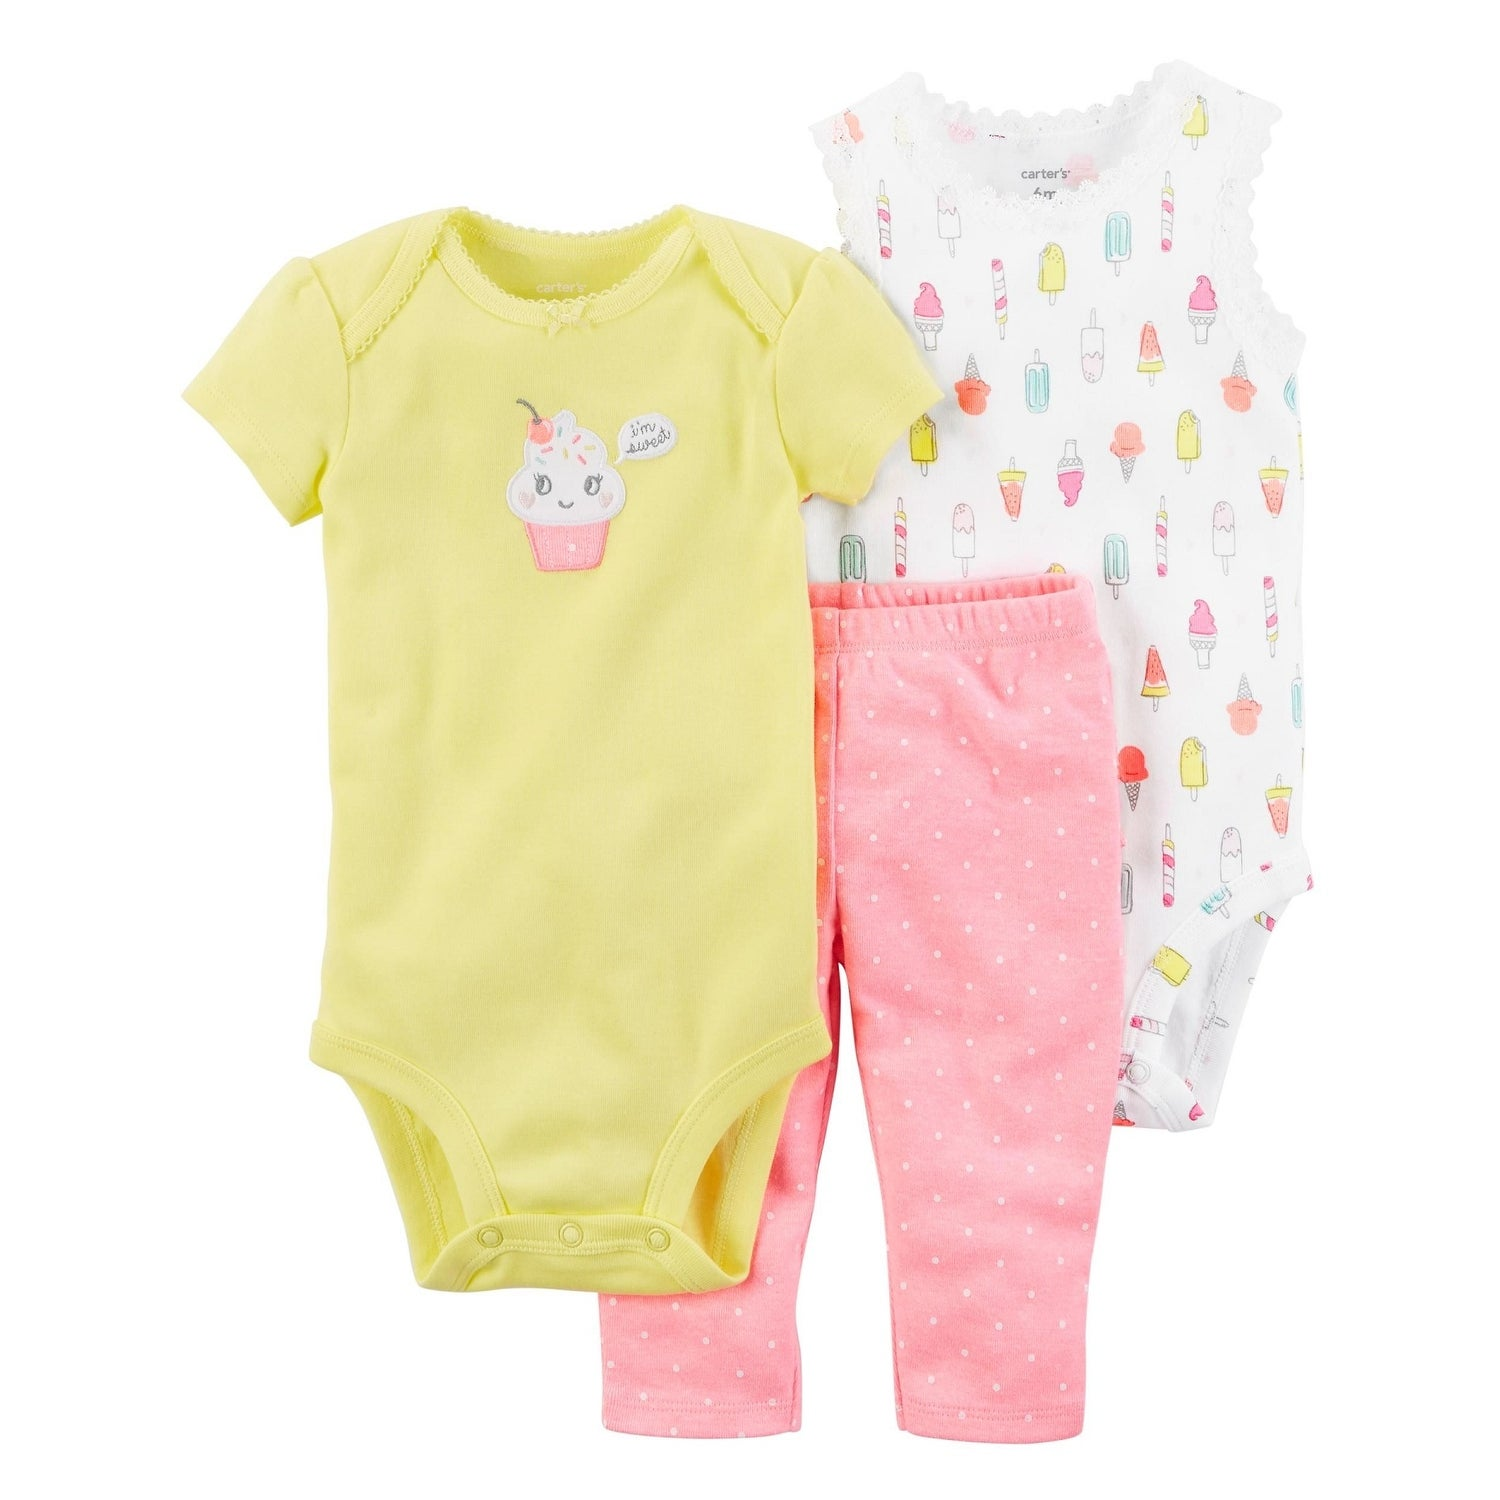 1ff00f657db Shop Carter s Baby Girls  3-Piece Little Character Set - Free Shipping On  Orders Over  45 - Overstock - 25586452